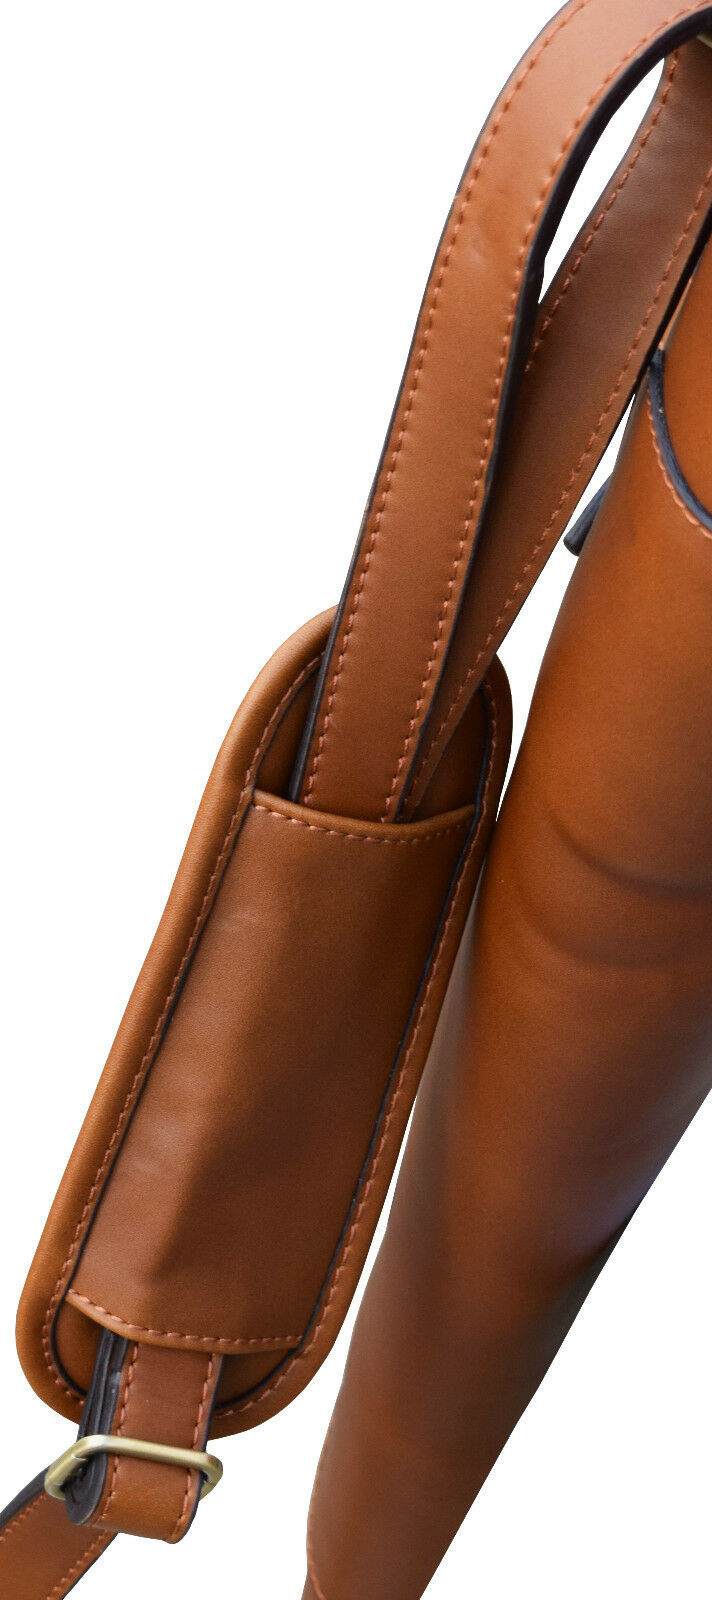 "LEATHER SHOTGUN SLIP TANNED GUARDIAN 46-50/"" GDK268T ZIP,LEATHER GUN CASE"